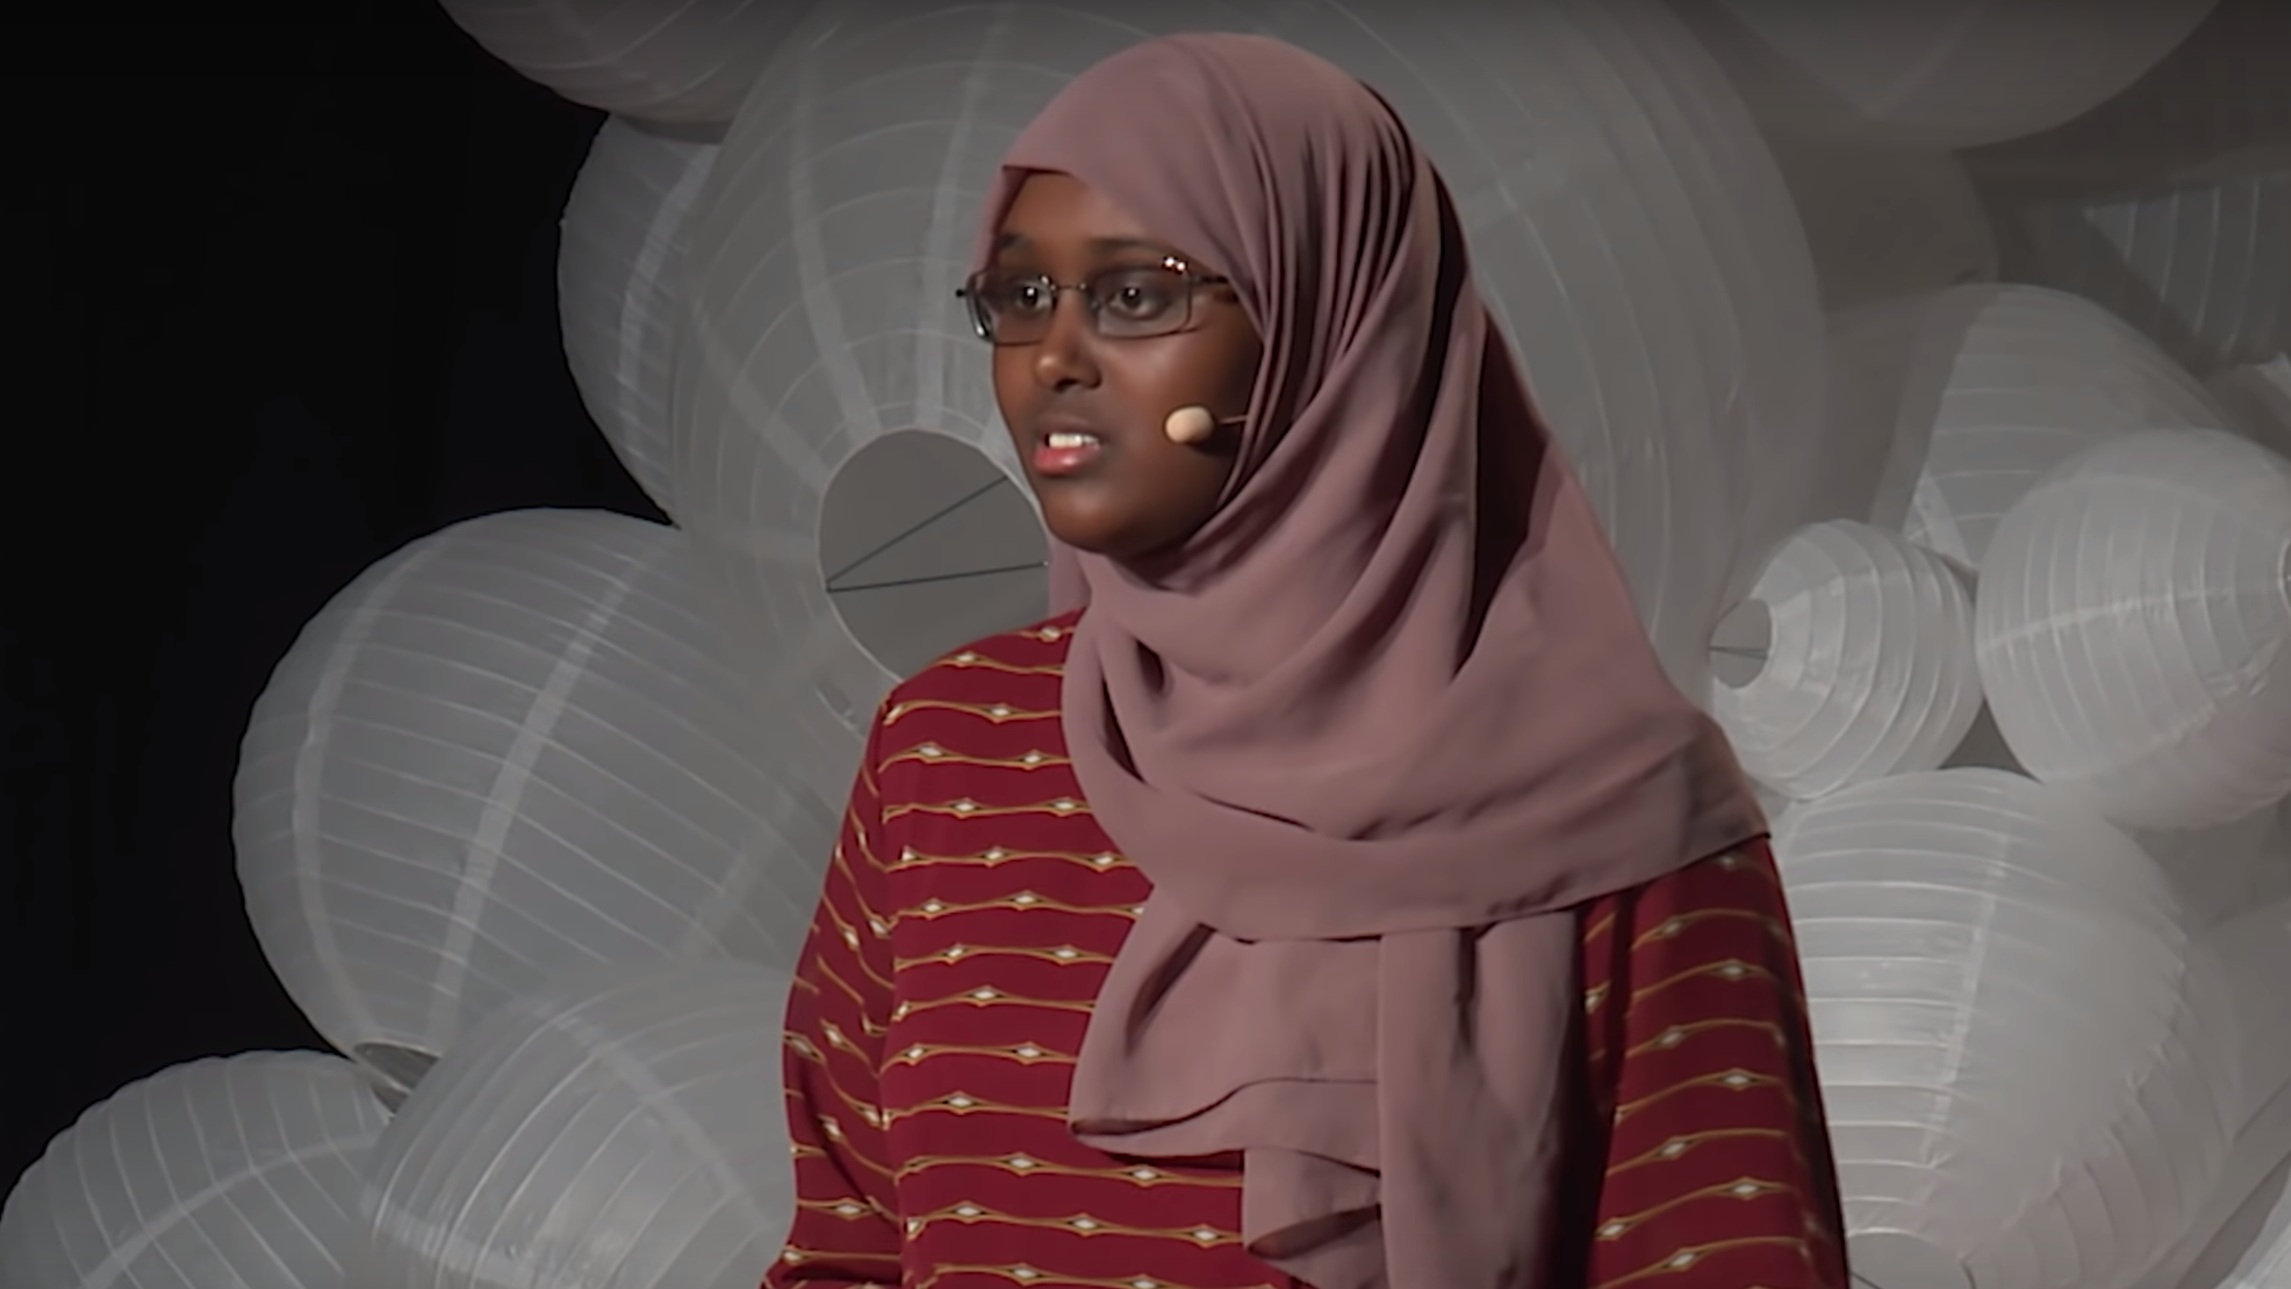 Meridian 12th grader Ifrah Gurhan presents at TEDx Youth at Beacon Street